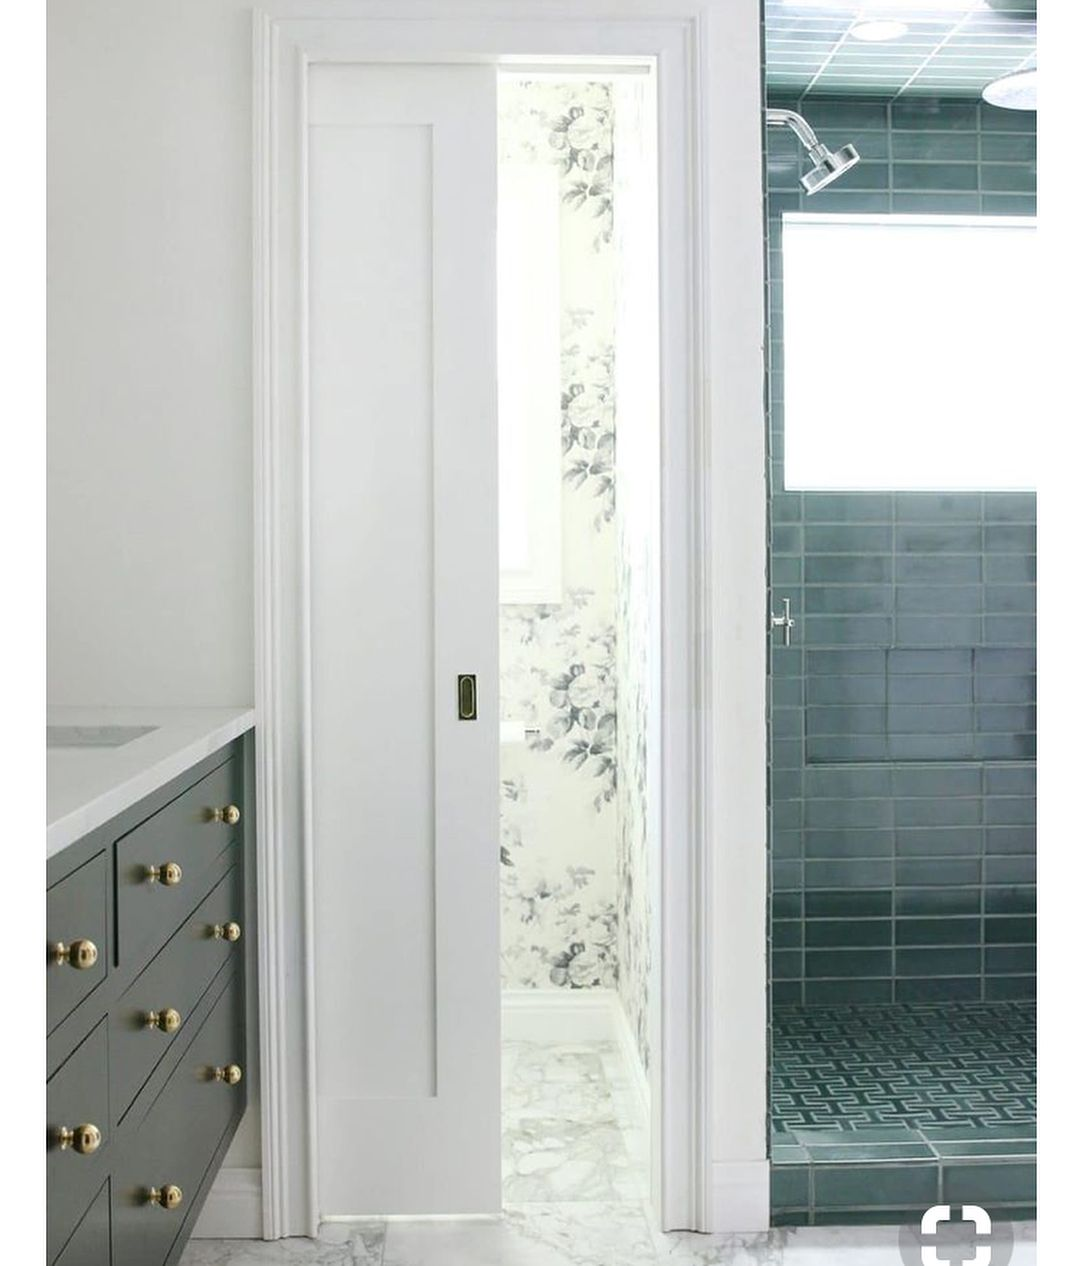 Today We Have Been Discussing Pros And Cons Of Pocket Doors In Master Ensuite With Rimamartinezdesign Defin